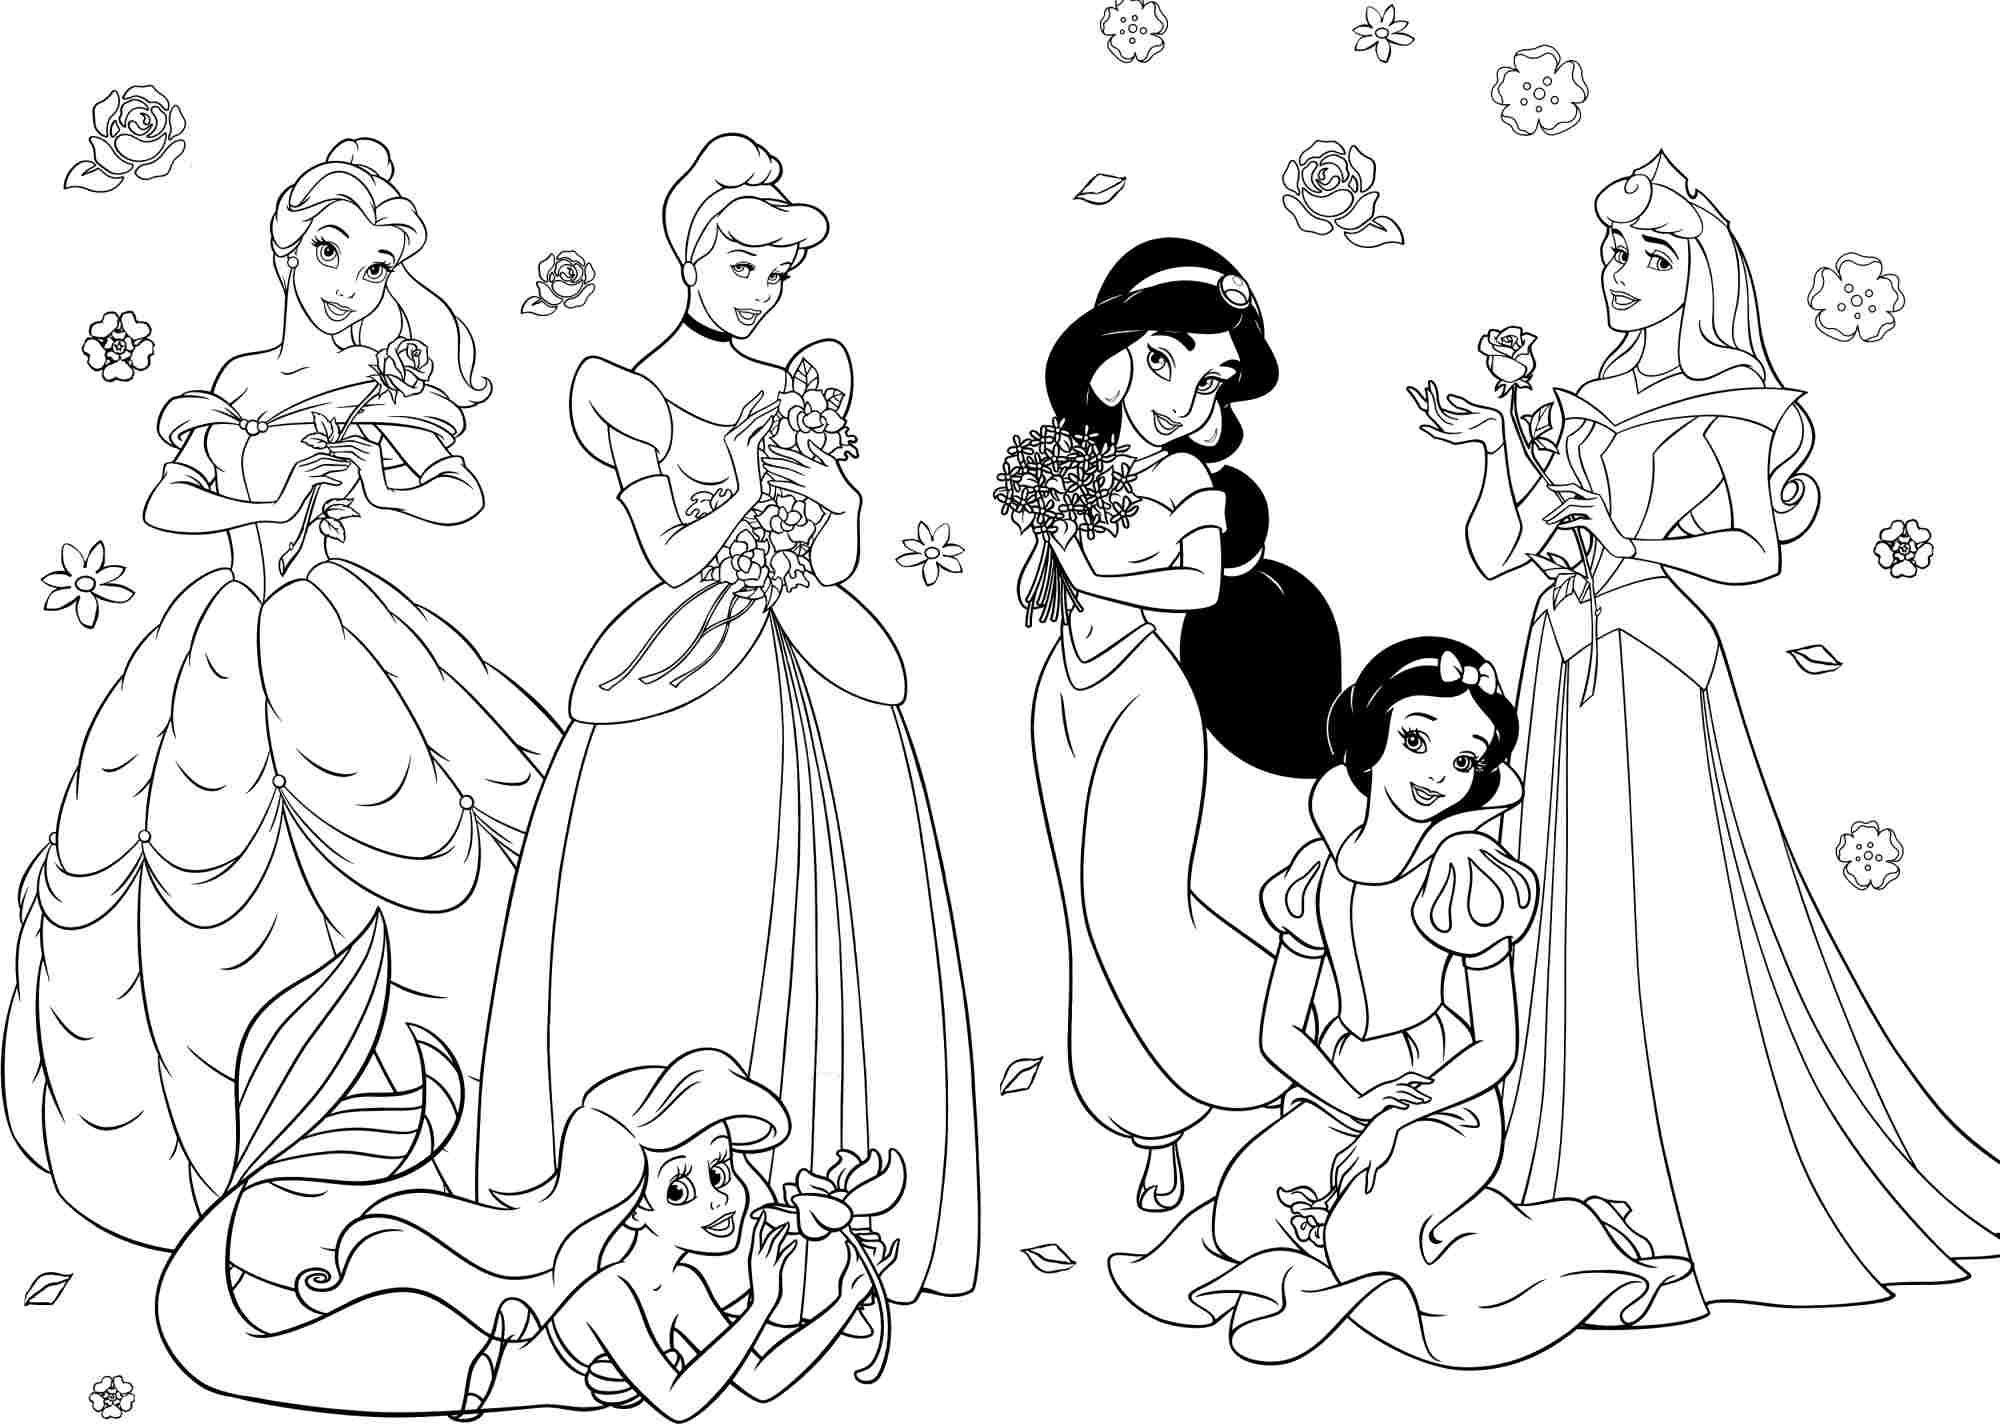 Princess Coloring Pages For Girls - Free Large Images   Crafting - Free Printable Princess Coloring Pages